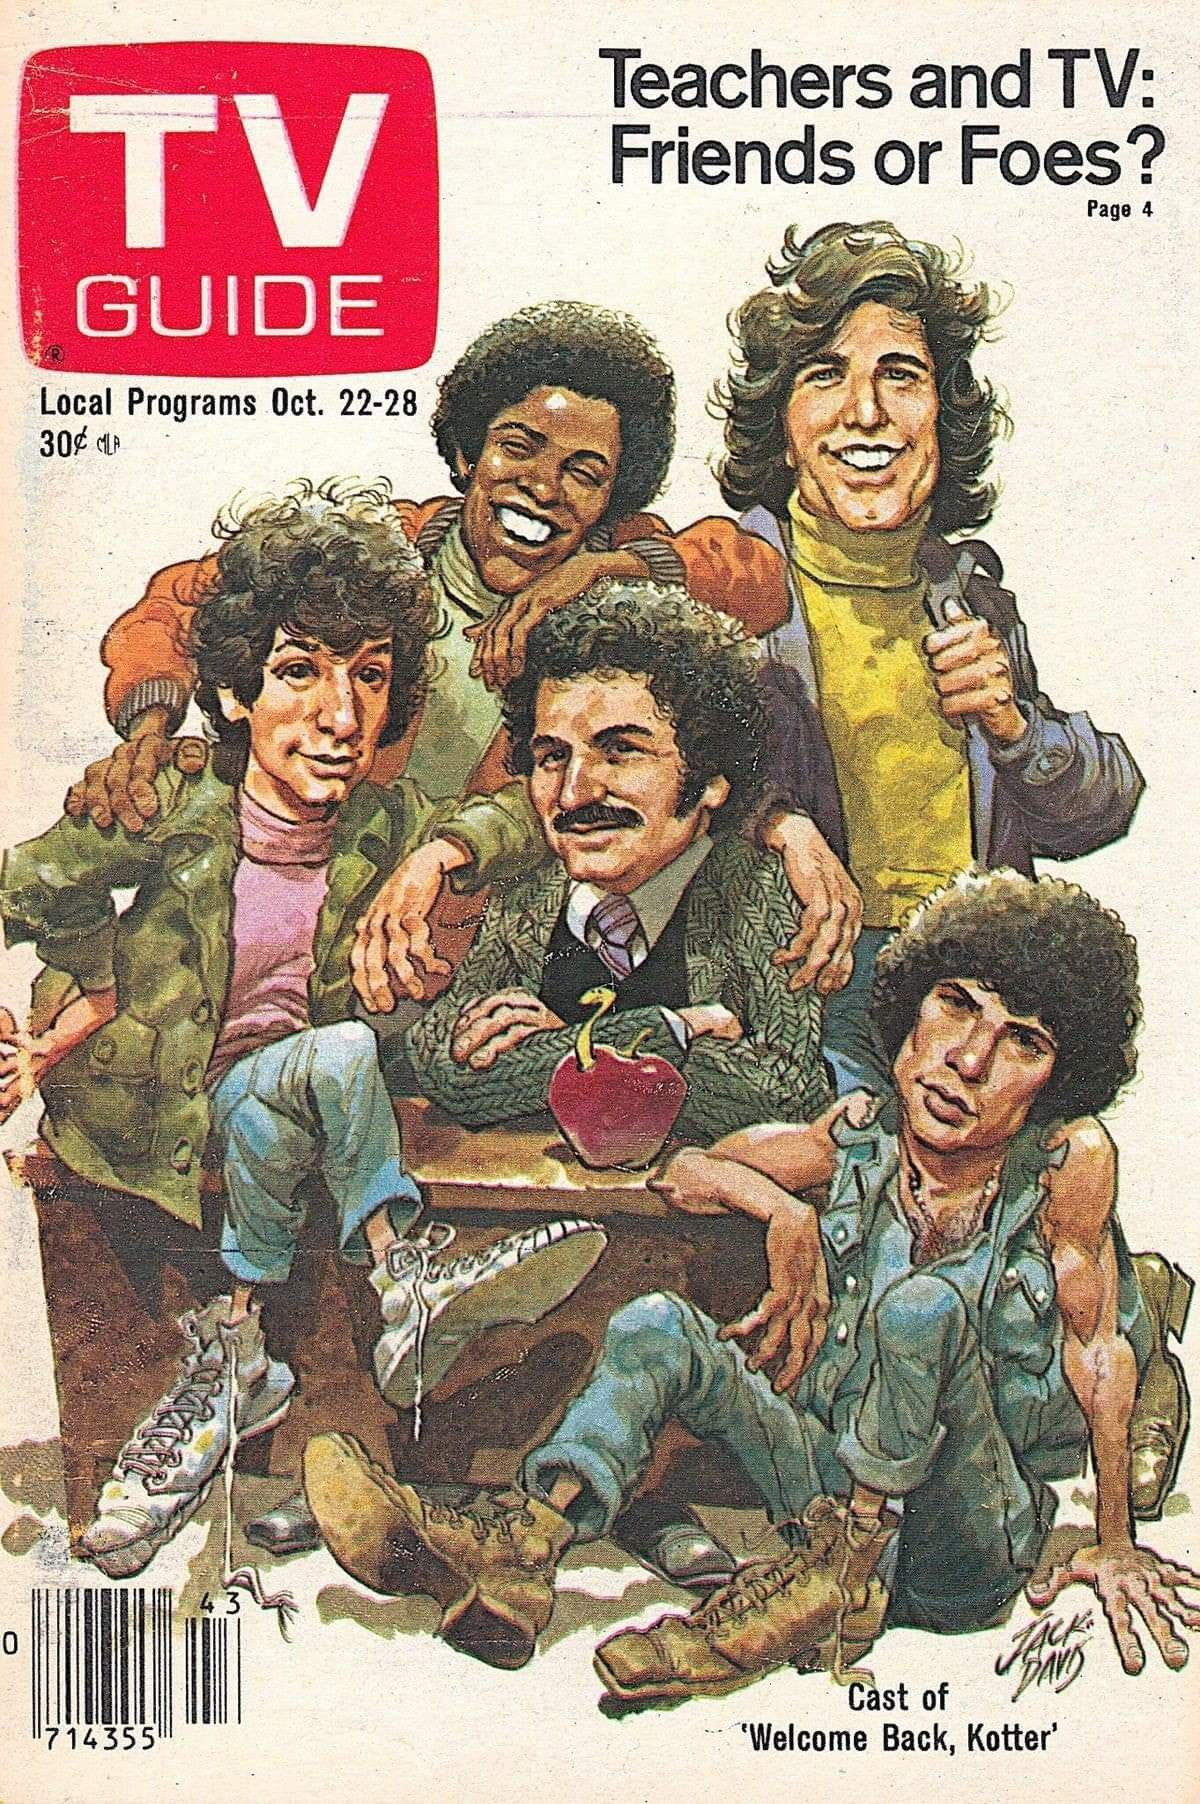 Pin by Cheryl Riley on TV GUIDE COVERS Tv guide,